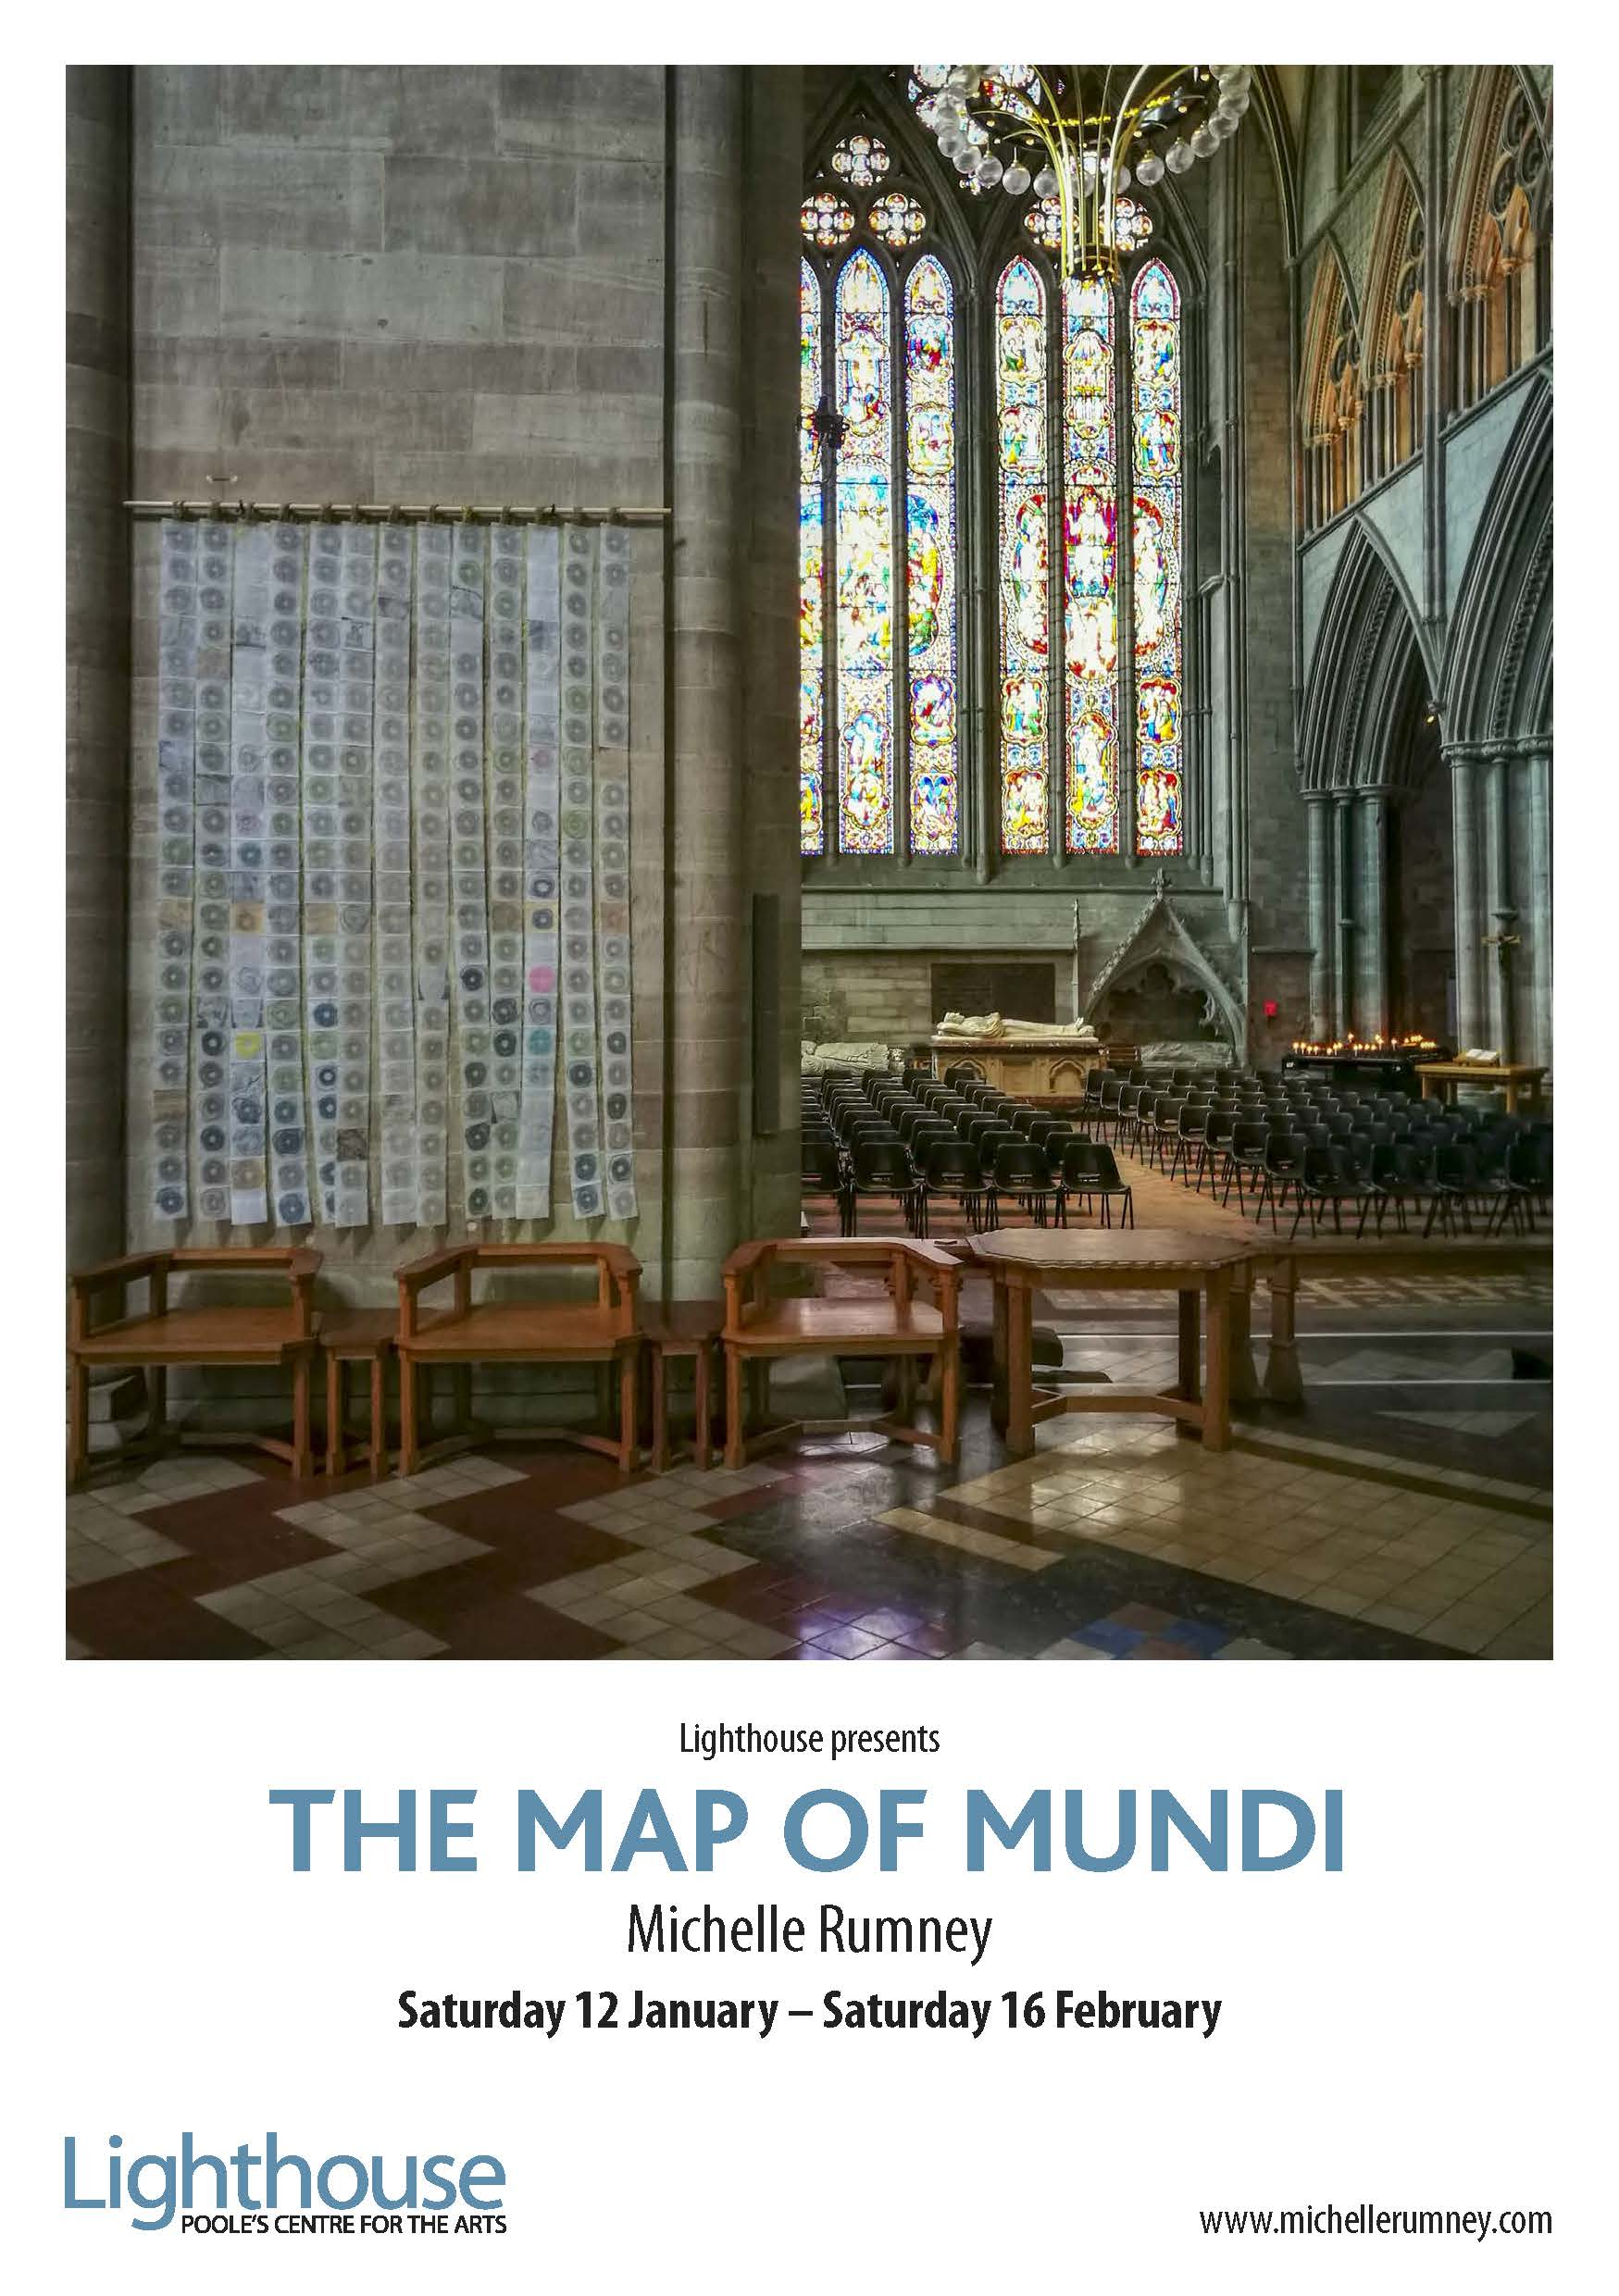 The Map of Mundi flyer advertising exhibition by artist Michelle Rumney and St Thomas Way at Lighthouse Poole's Centre for the Arts, Dorset